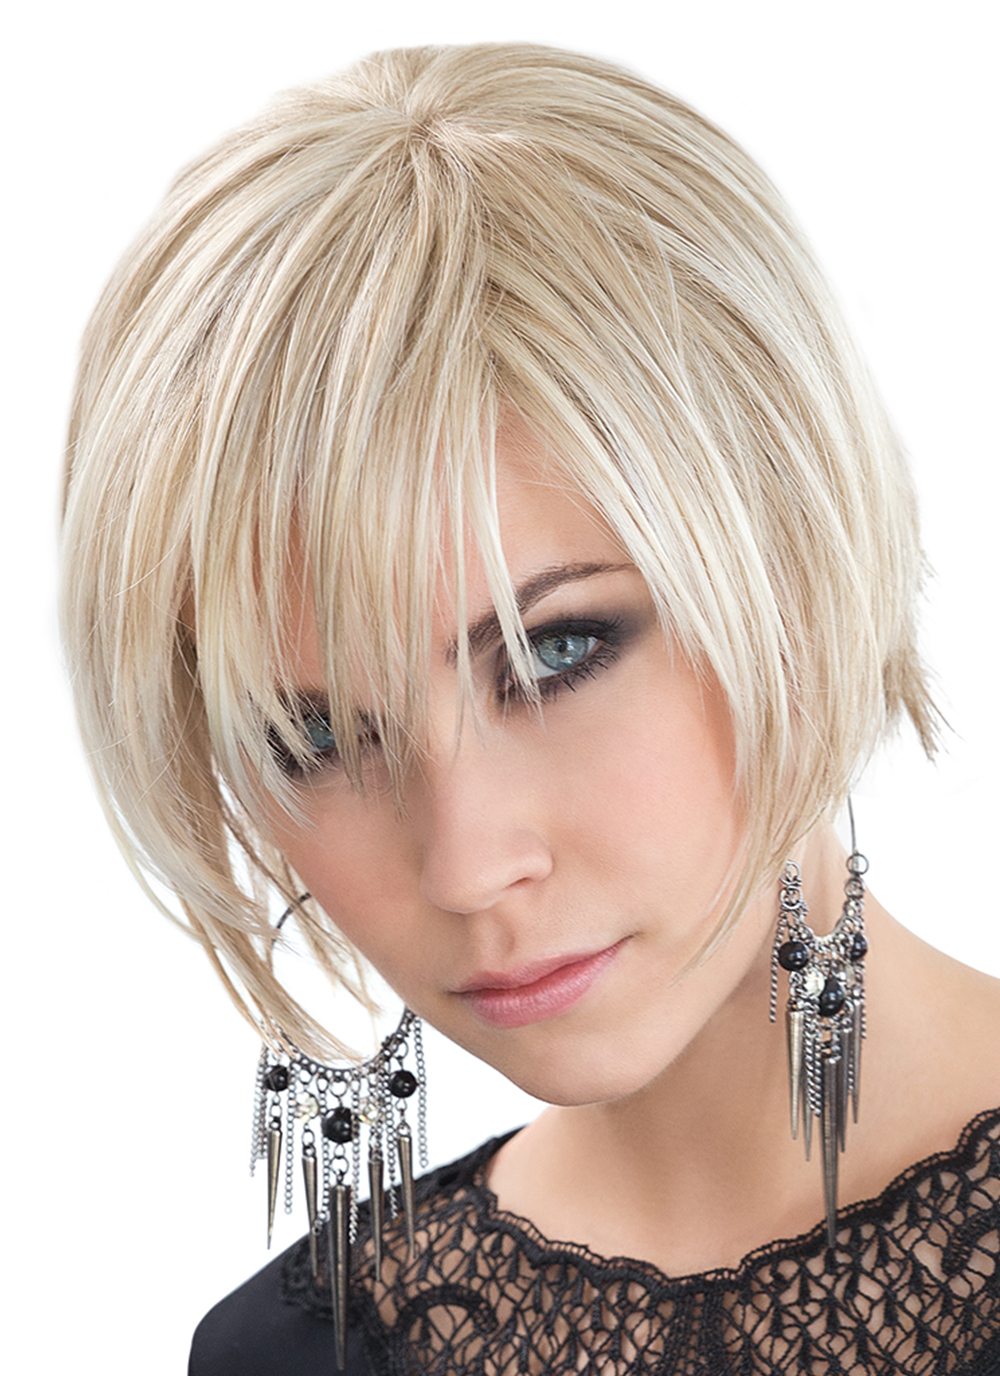 Echo WIg by Ellen Wille | Trendy Short Hair Wig | Colour Light Champagne Mix